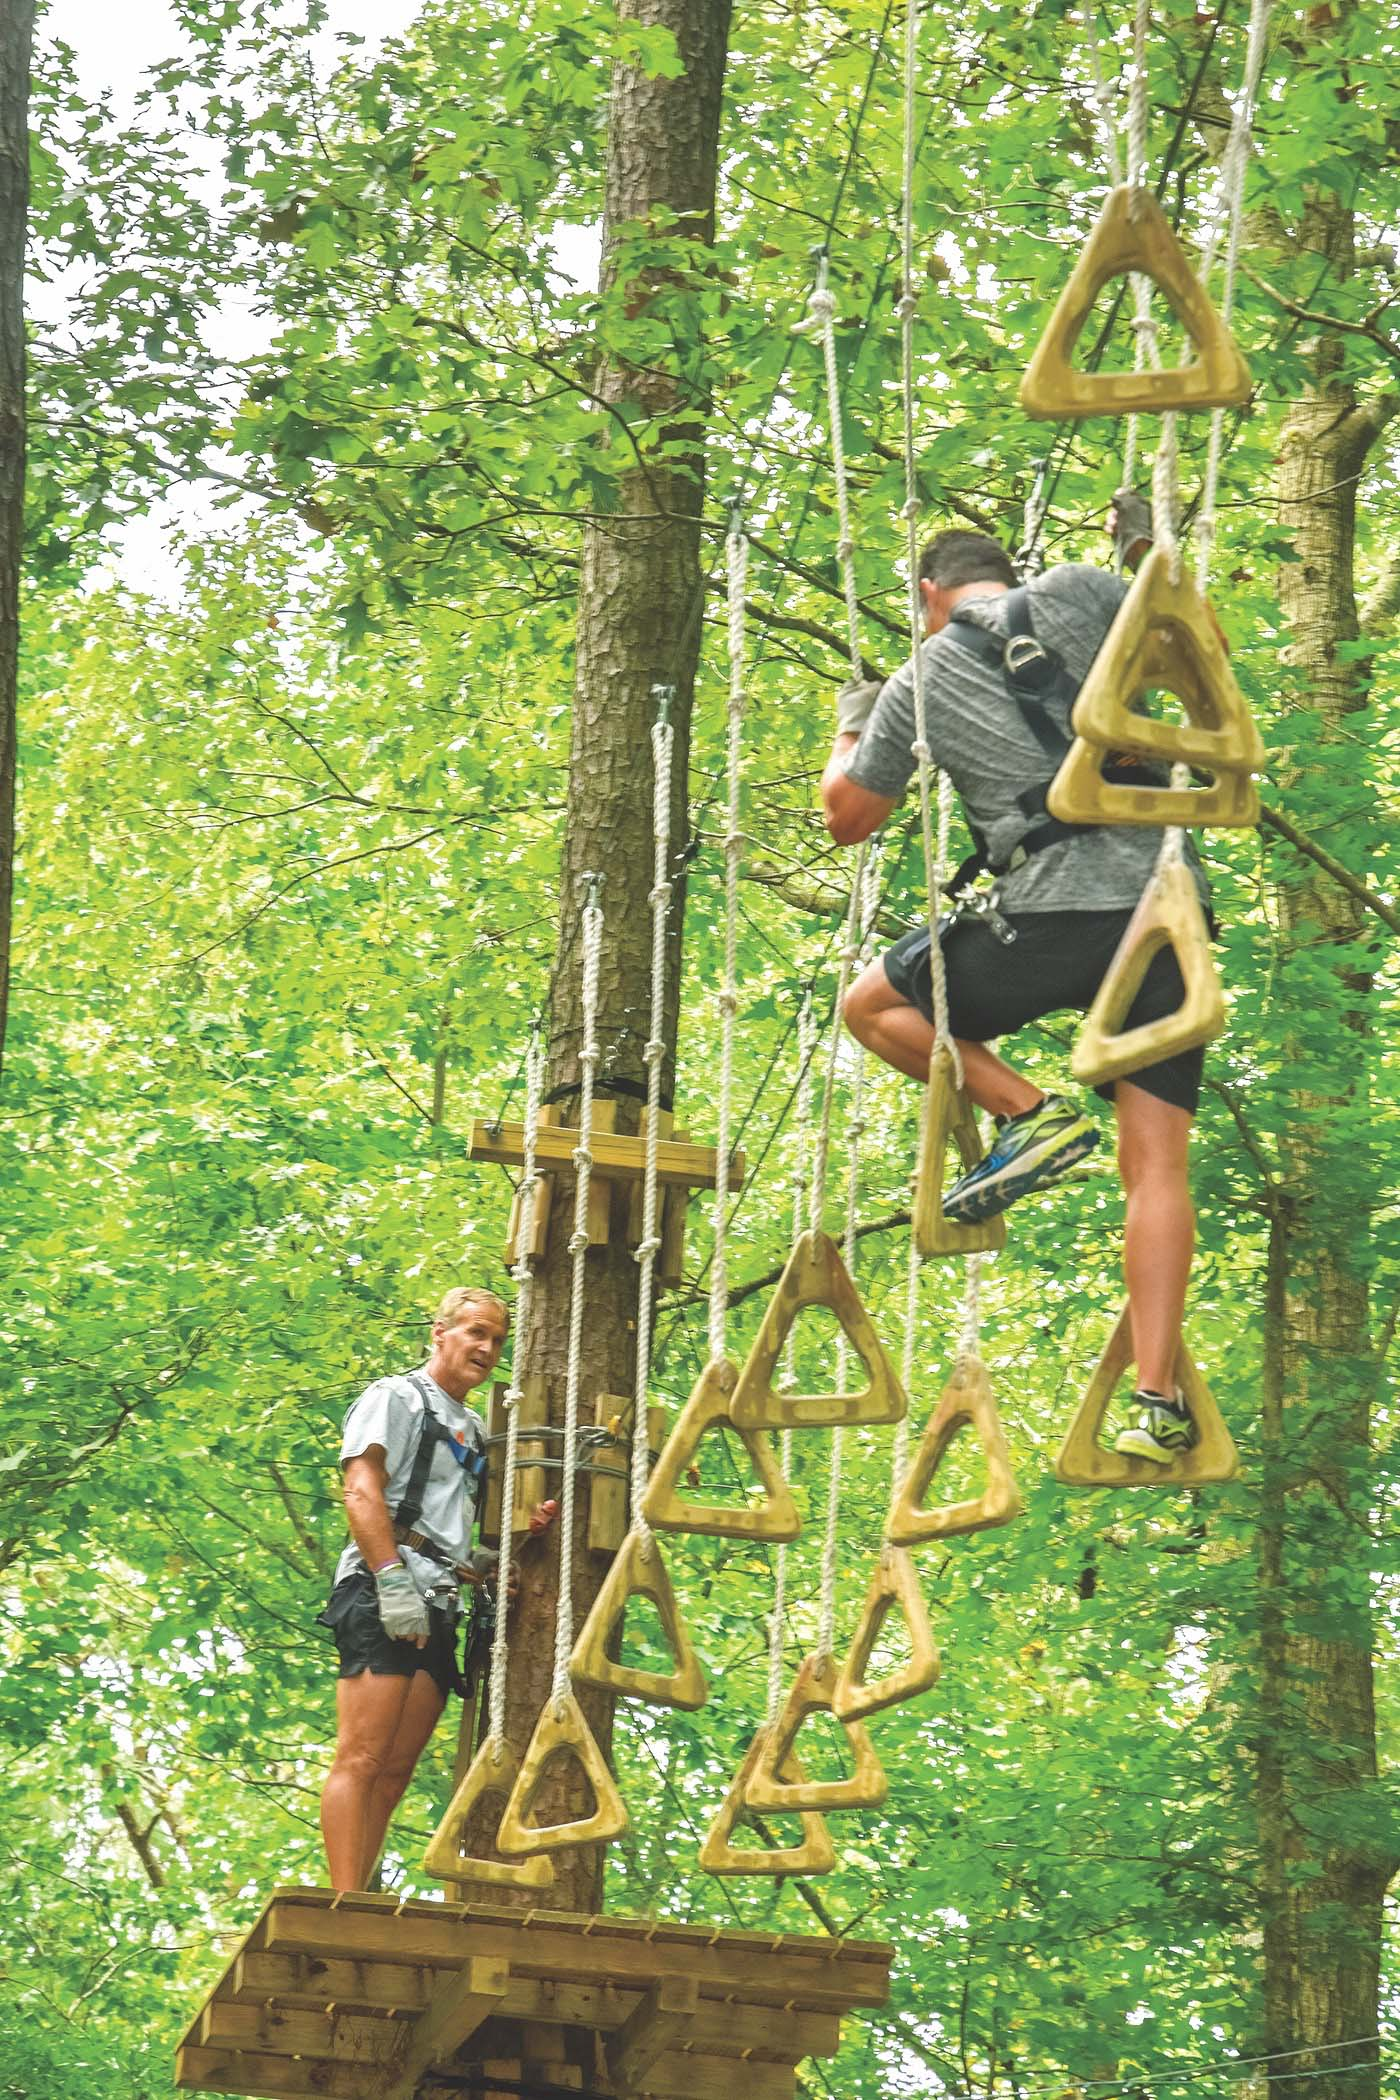 Zipline Courses Throughout Virginia Are